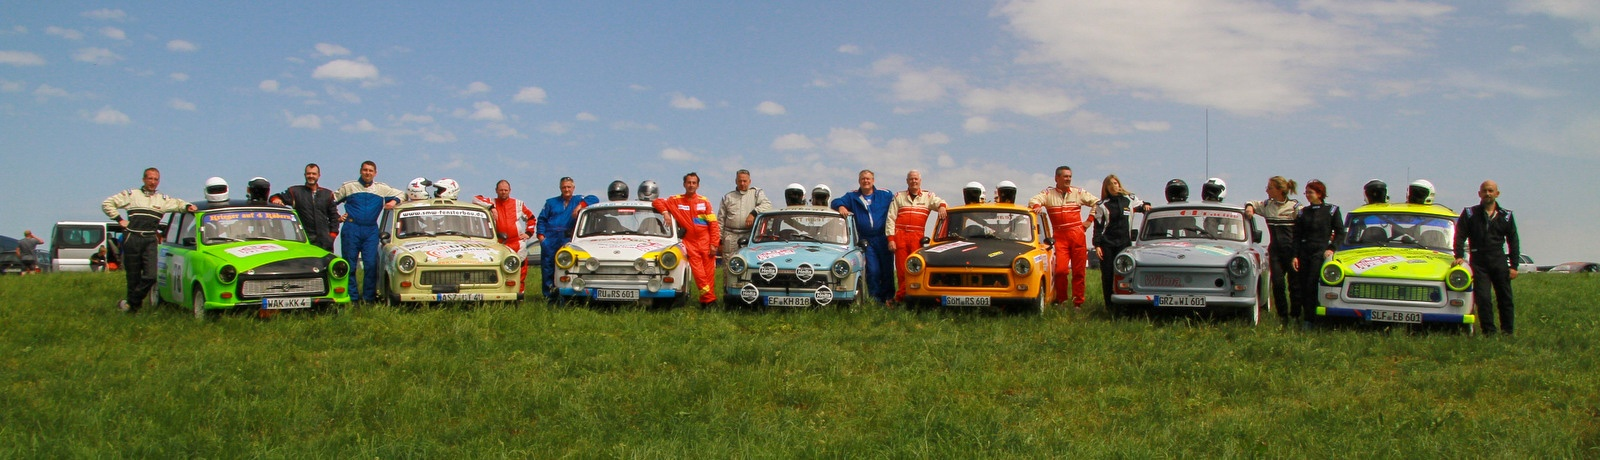 ITRM Trabant Rallyesport